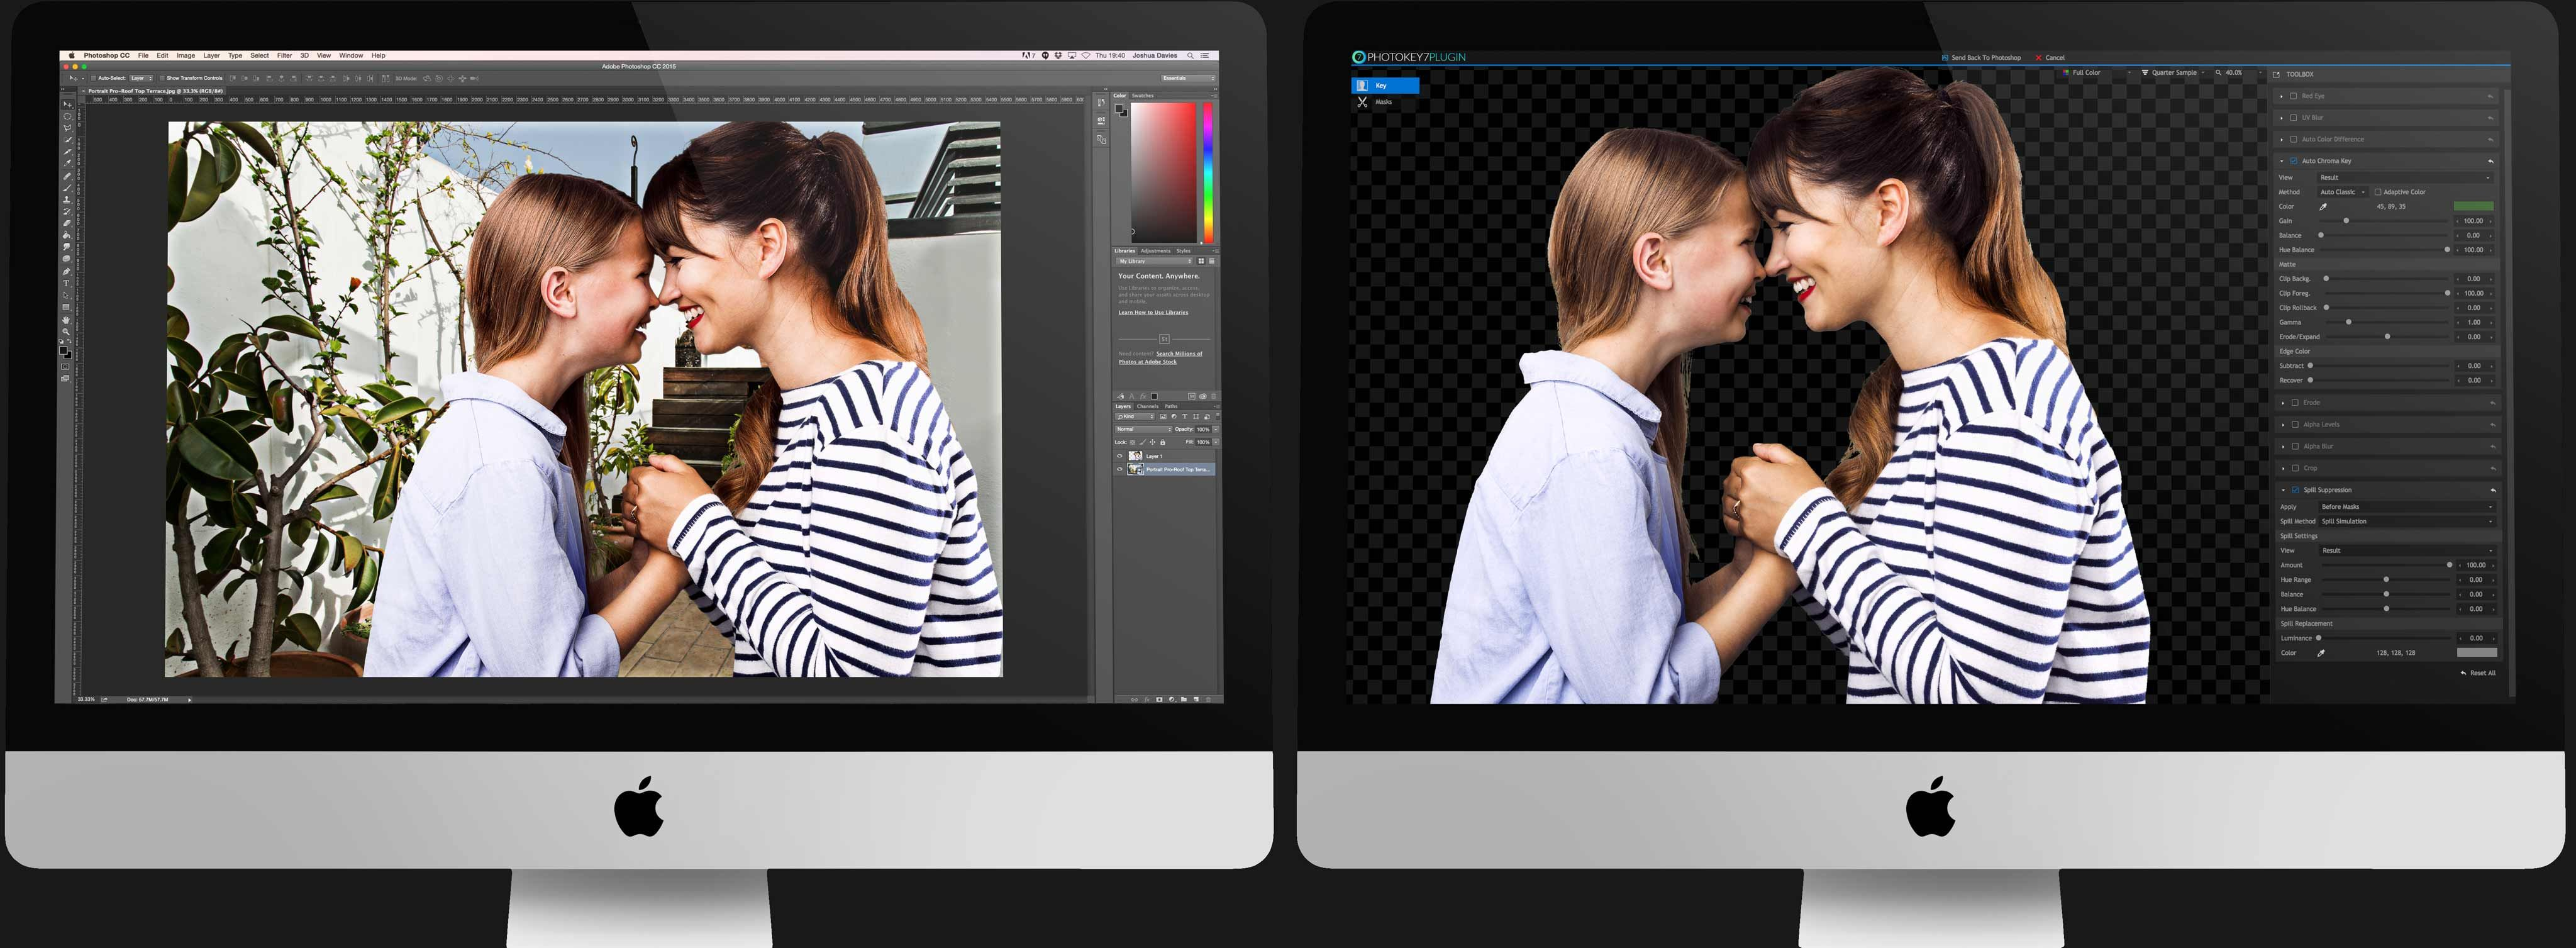 PhotoKey Plugin and Adobe Photoshop working side-by side